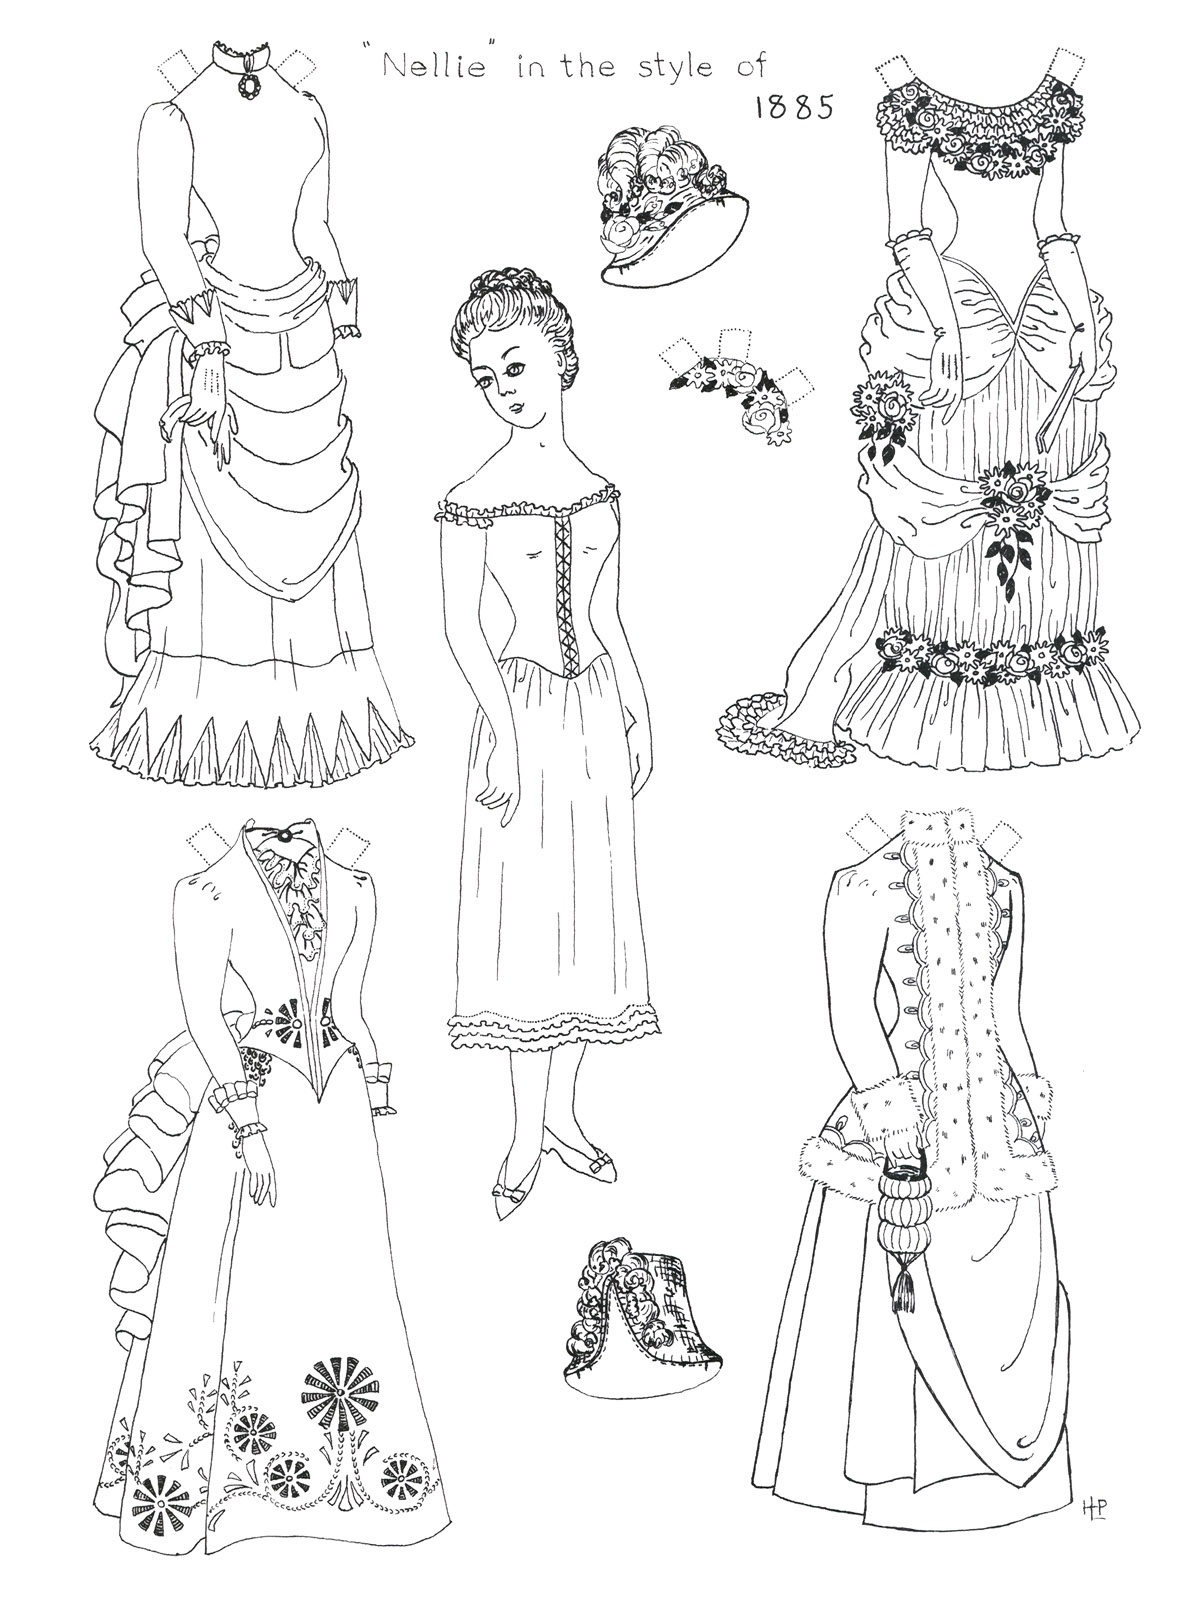 Printable Paper Doll Coloring Pages | Coloringme - Printable Paper Dolls To Color Free